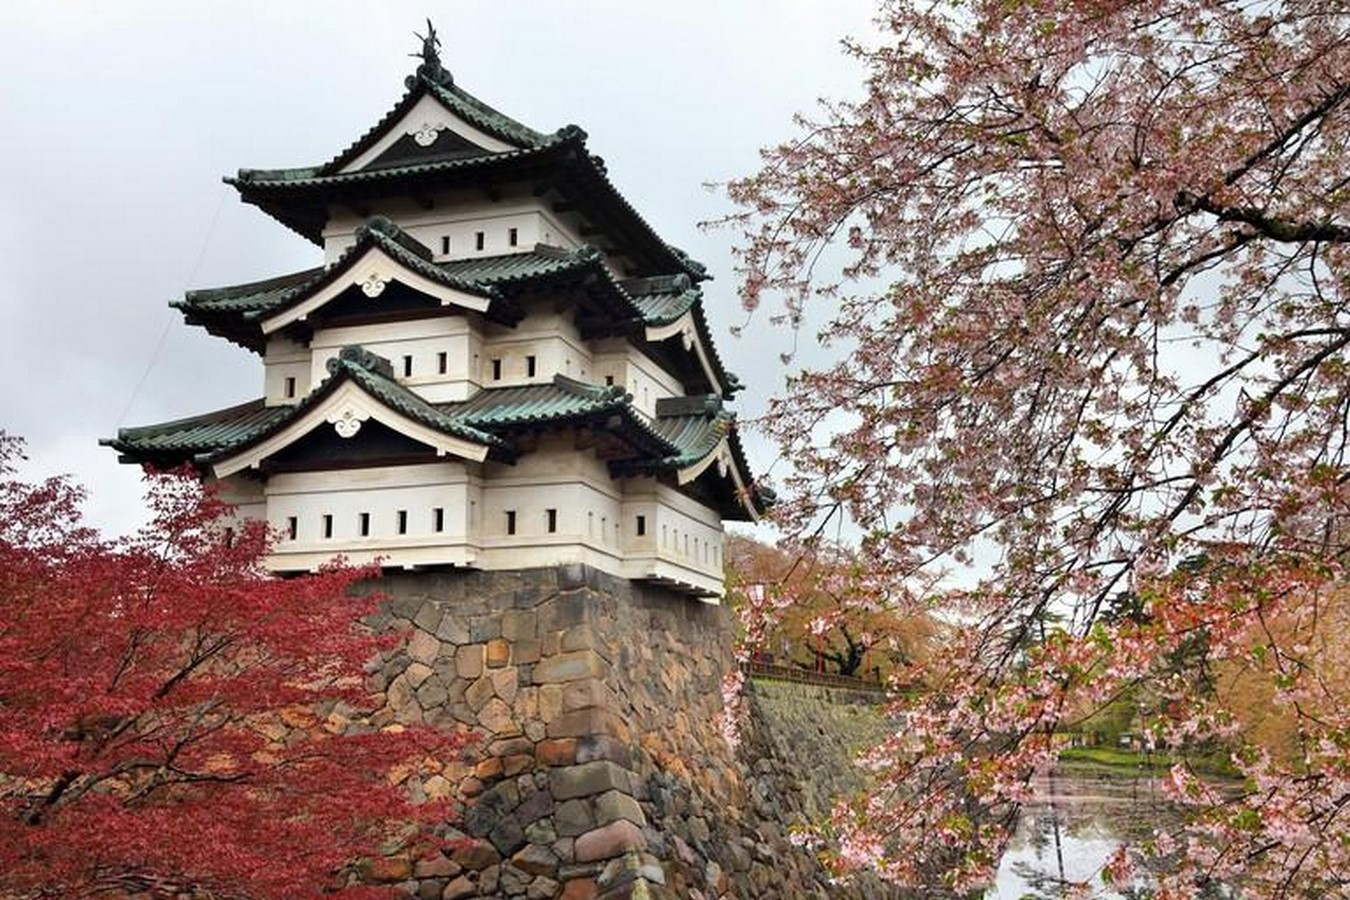 Architecture of Japan: Is it really Sustainable? - Sheet4